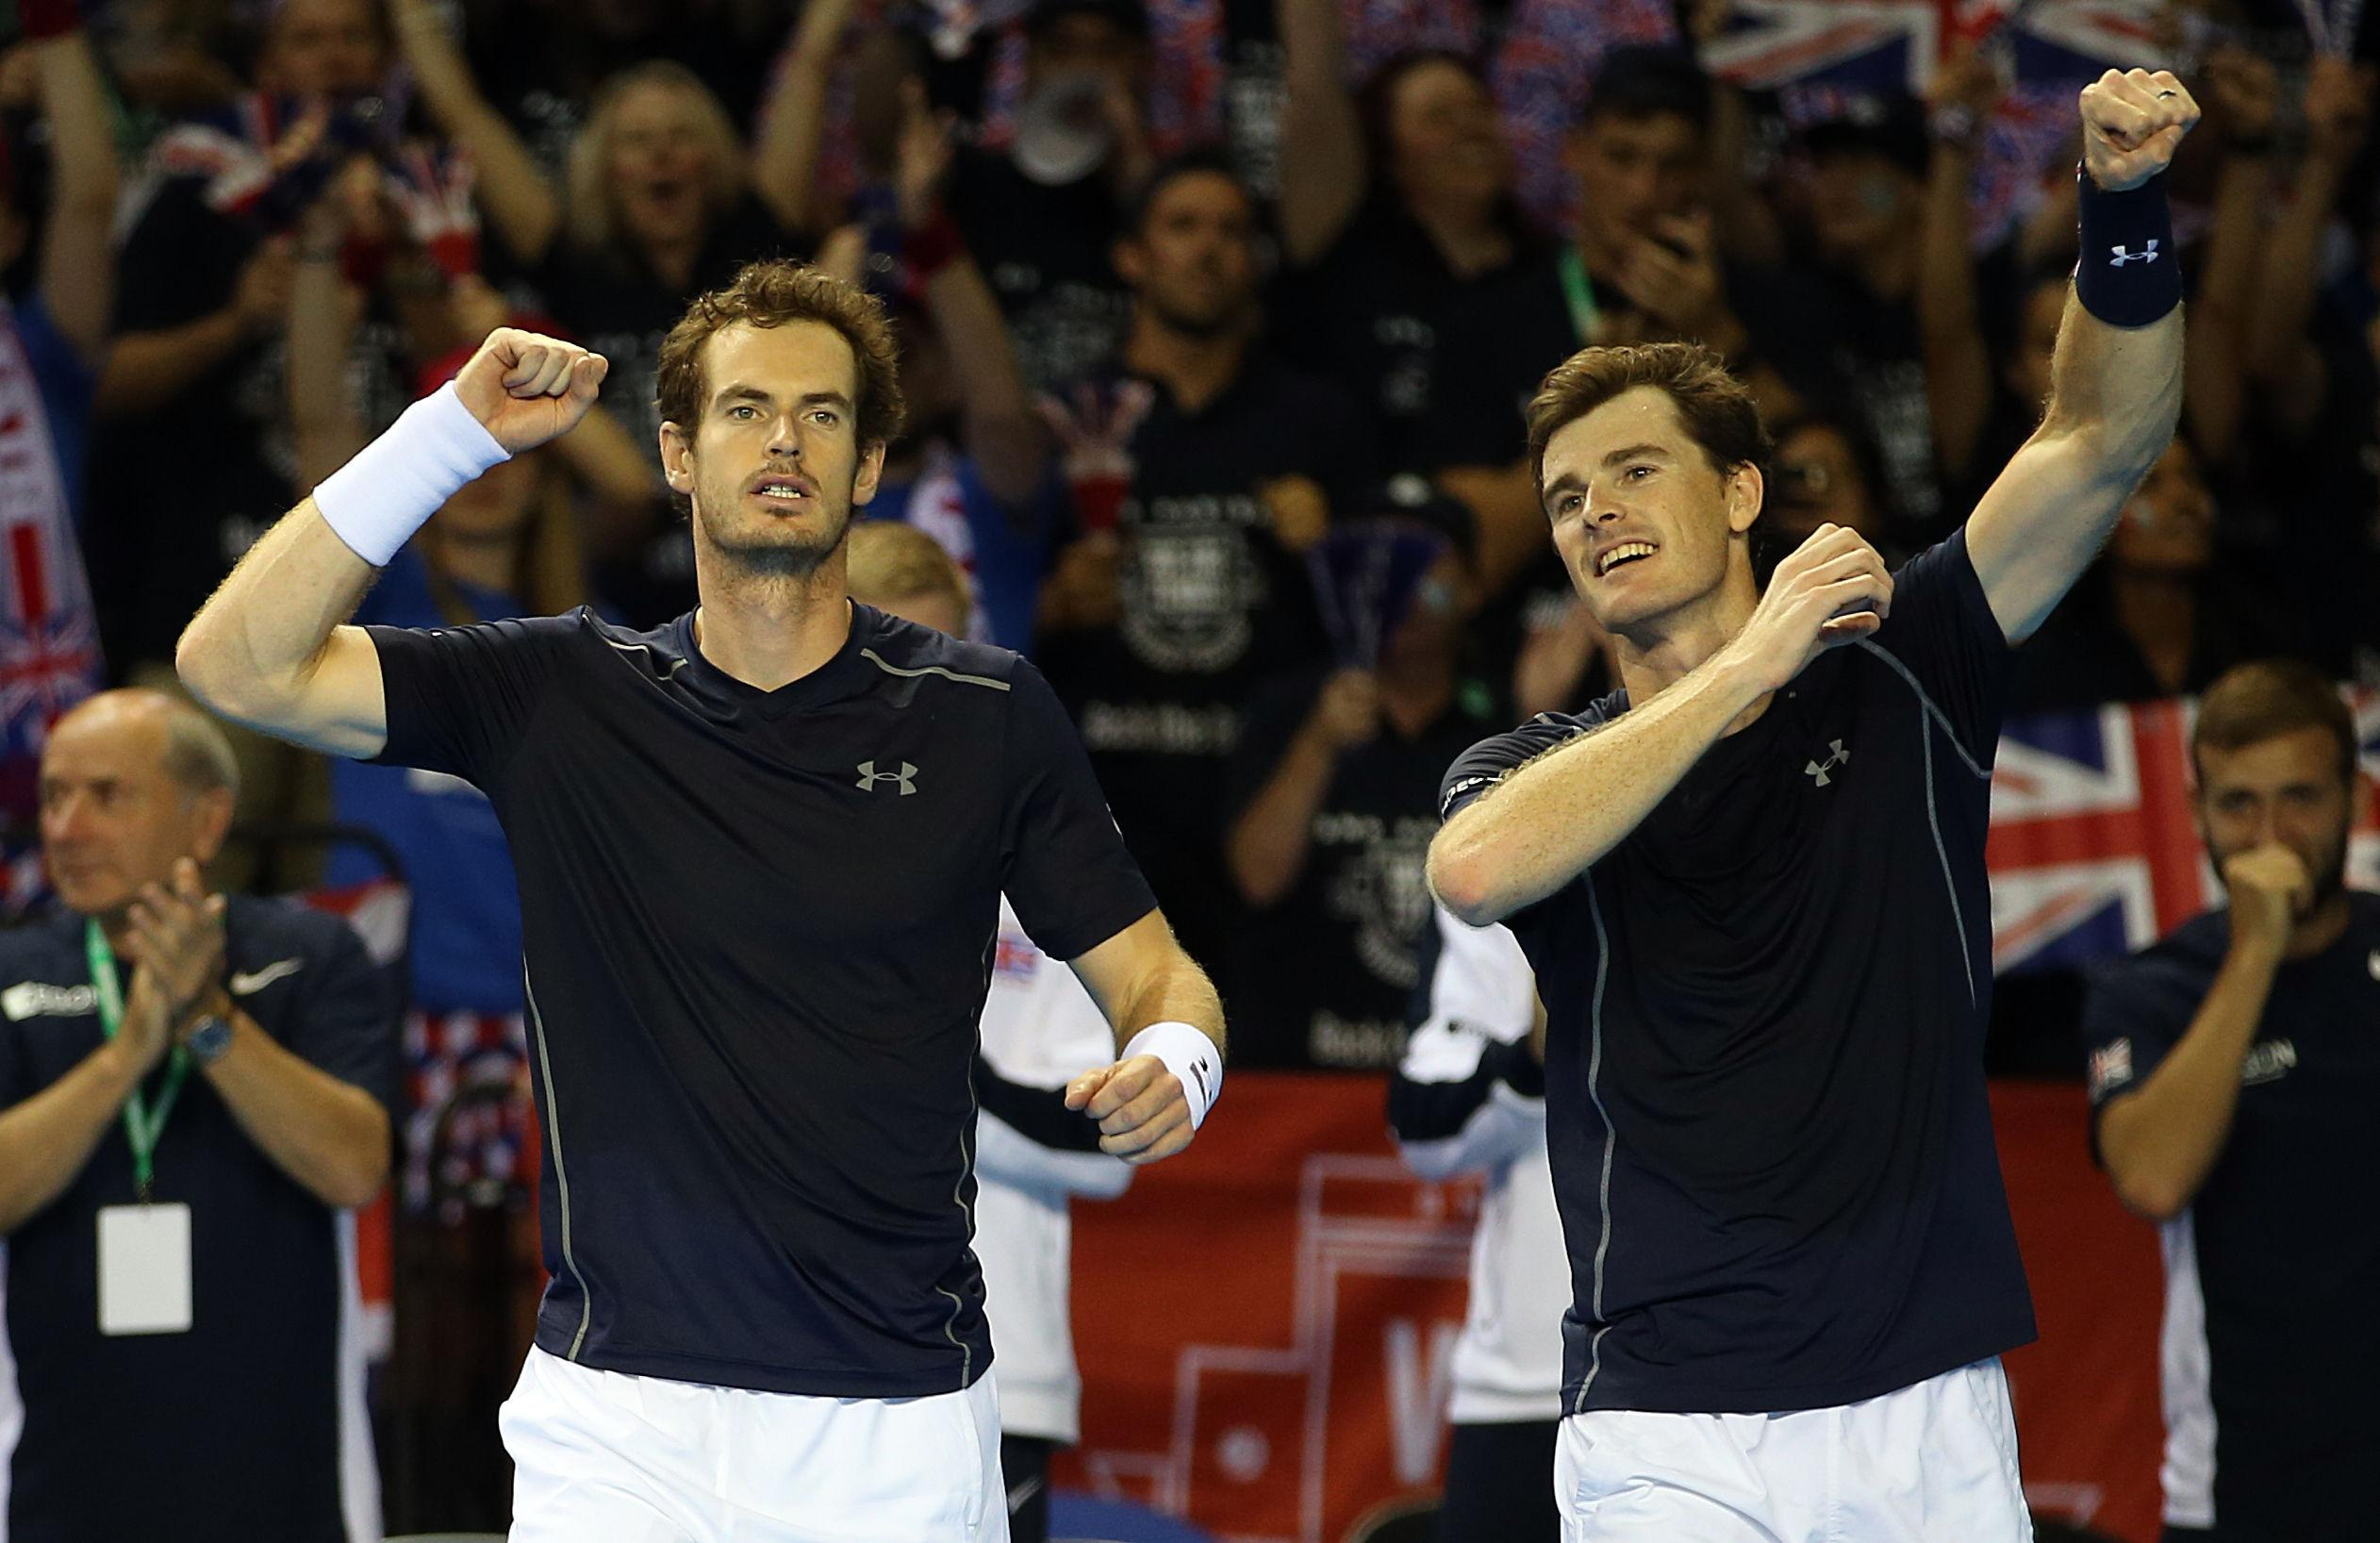 Murray has always received brilliant support in his home nation but misses this month's tie with injury